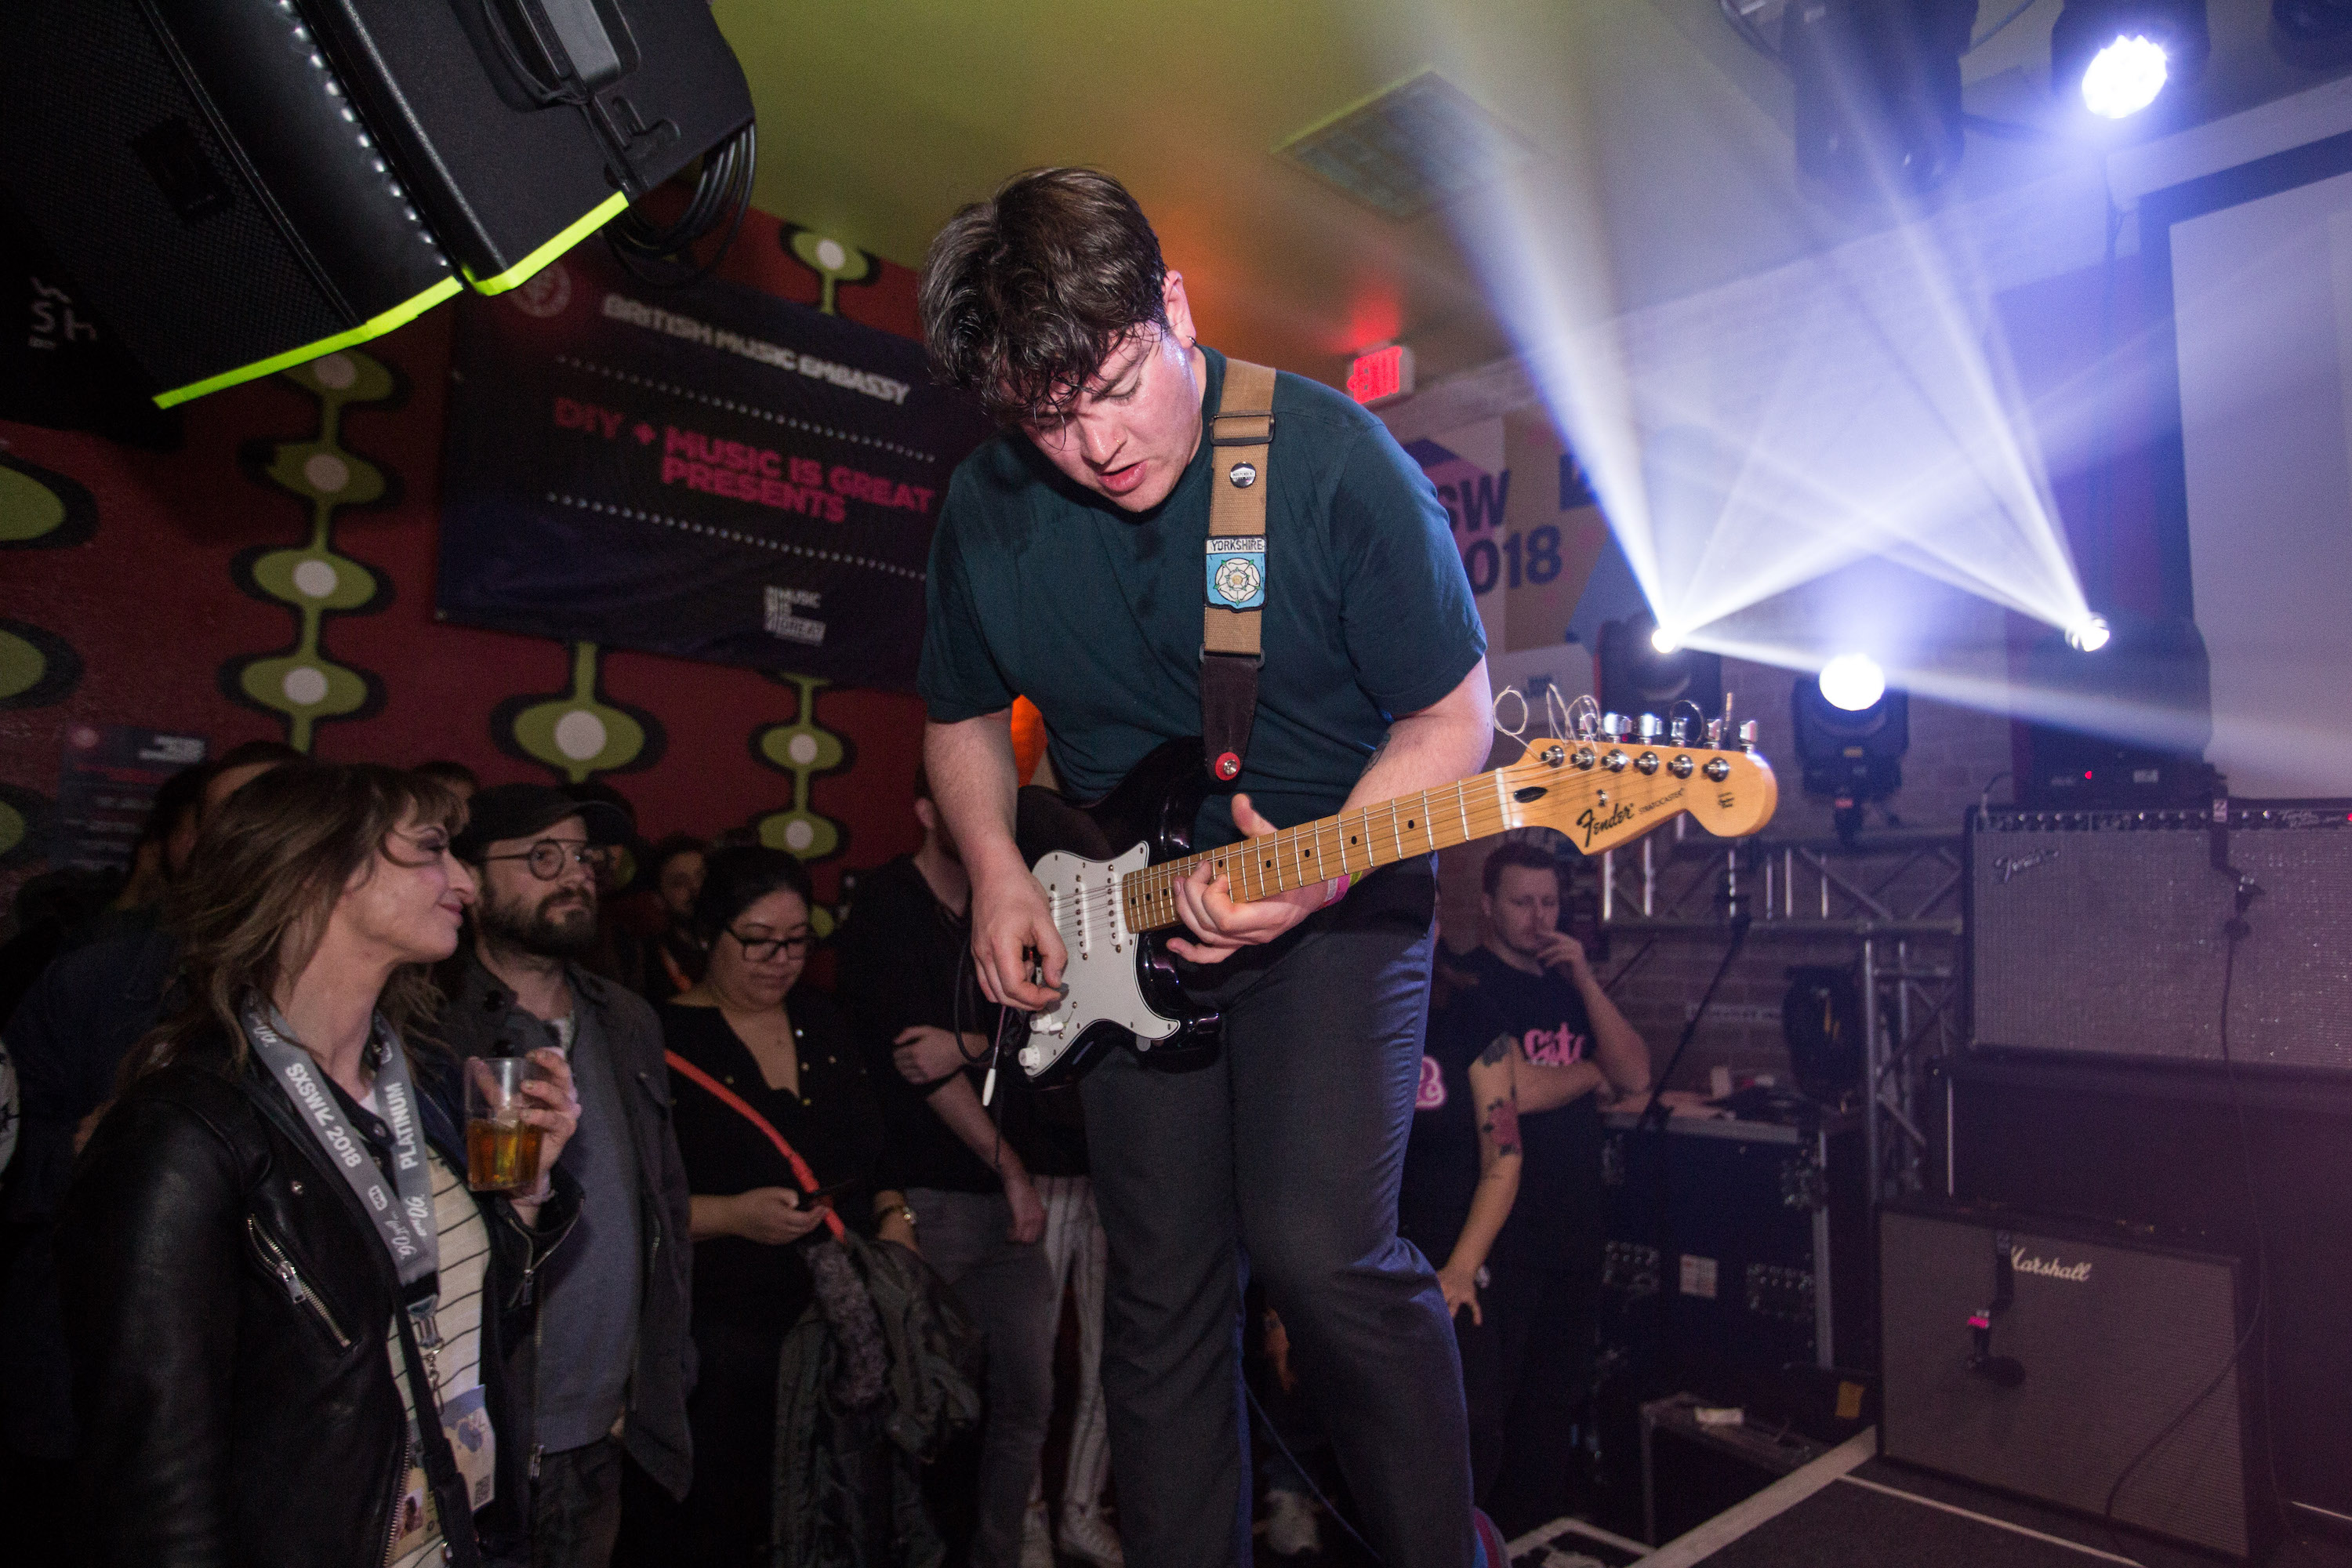 LIFE, Our Girl & Francobollo lead the charge on DIY's SXSW stage at the British Music Embassy